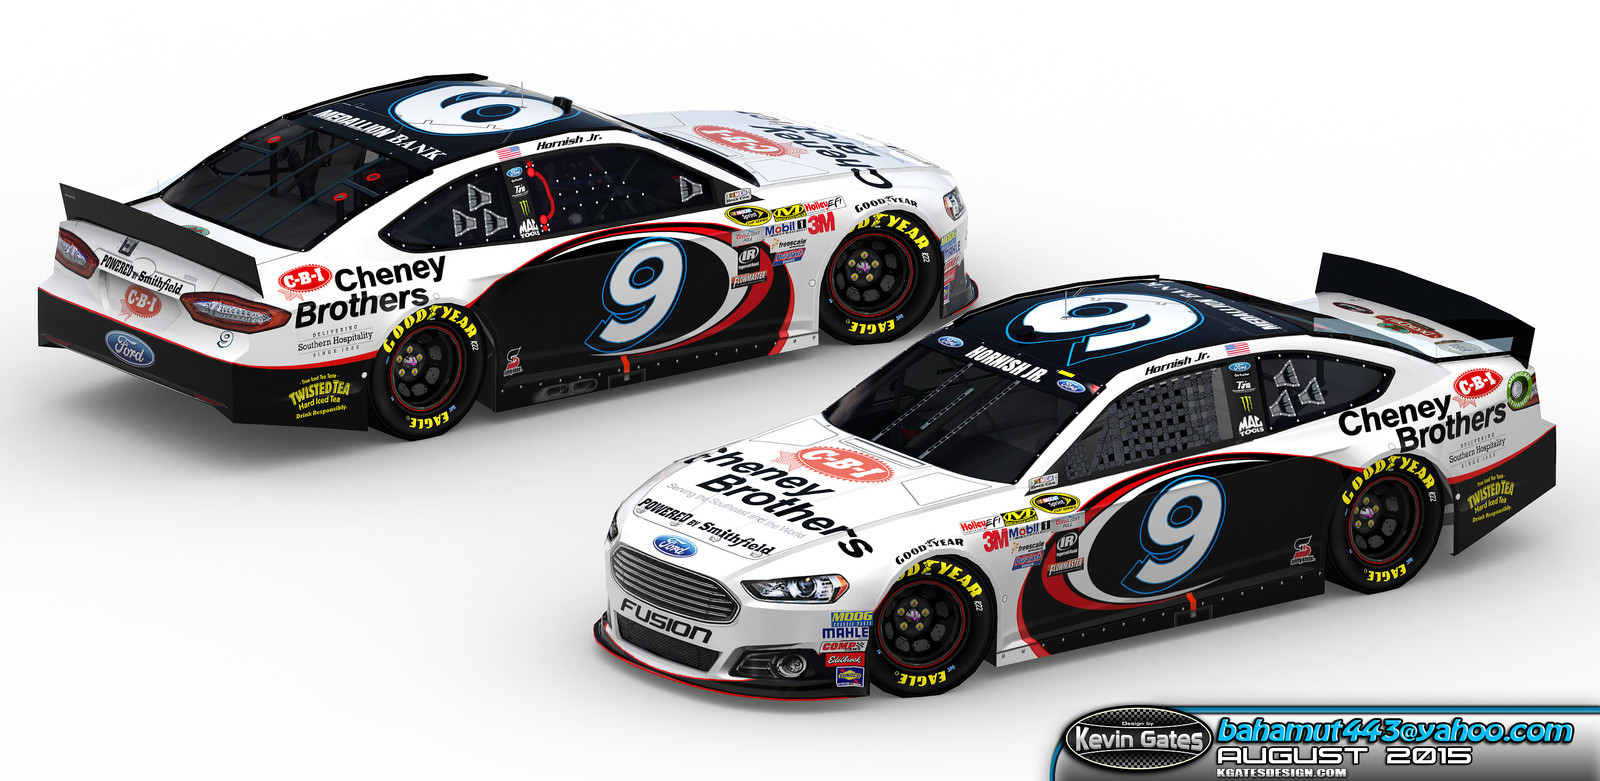 Original Autodesk 3DS Max render of the finalized 2015 #9 Cheney Brothers Ford Fusion driven by NASCAR Sprint Cup Series driver Sam Hornish Jr. of Richard Petty Motorsports